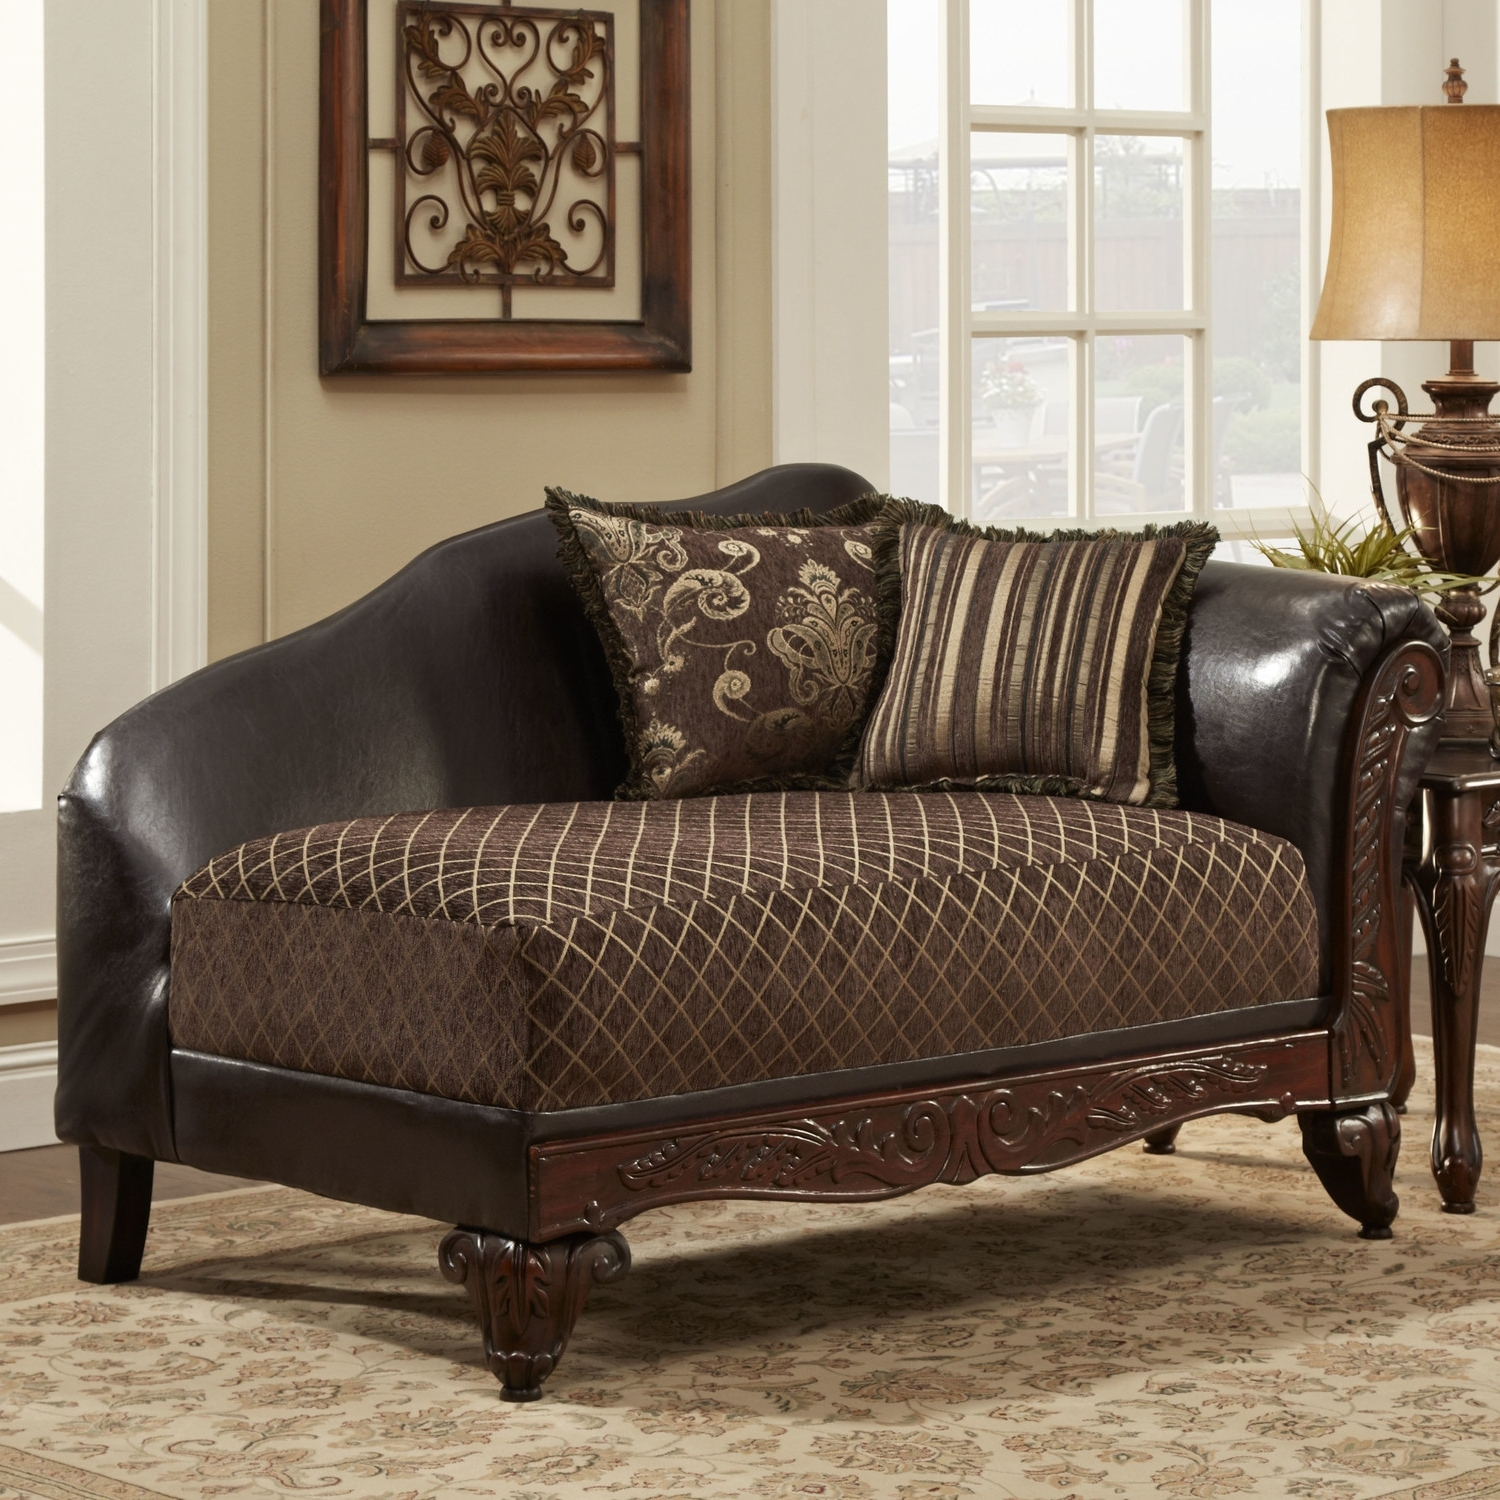 Wonderful Brown Leather Chaise Lounge With Traditional Chaise Within Most Current Brown Leather Chaise Lounges (View 5 of 15)